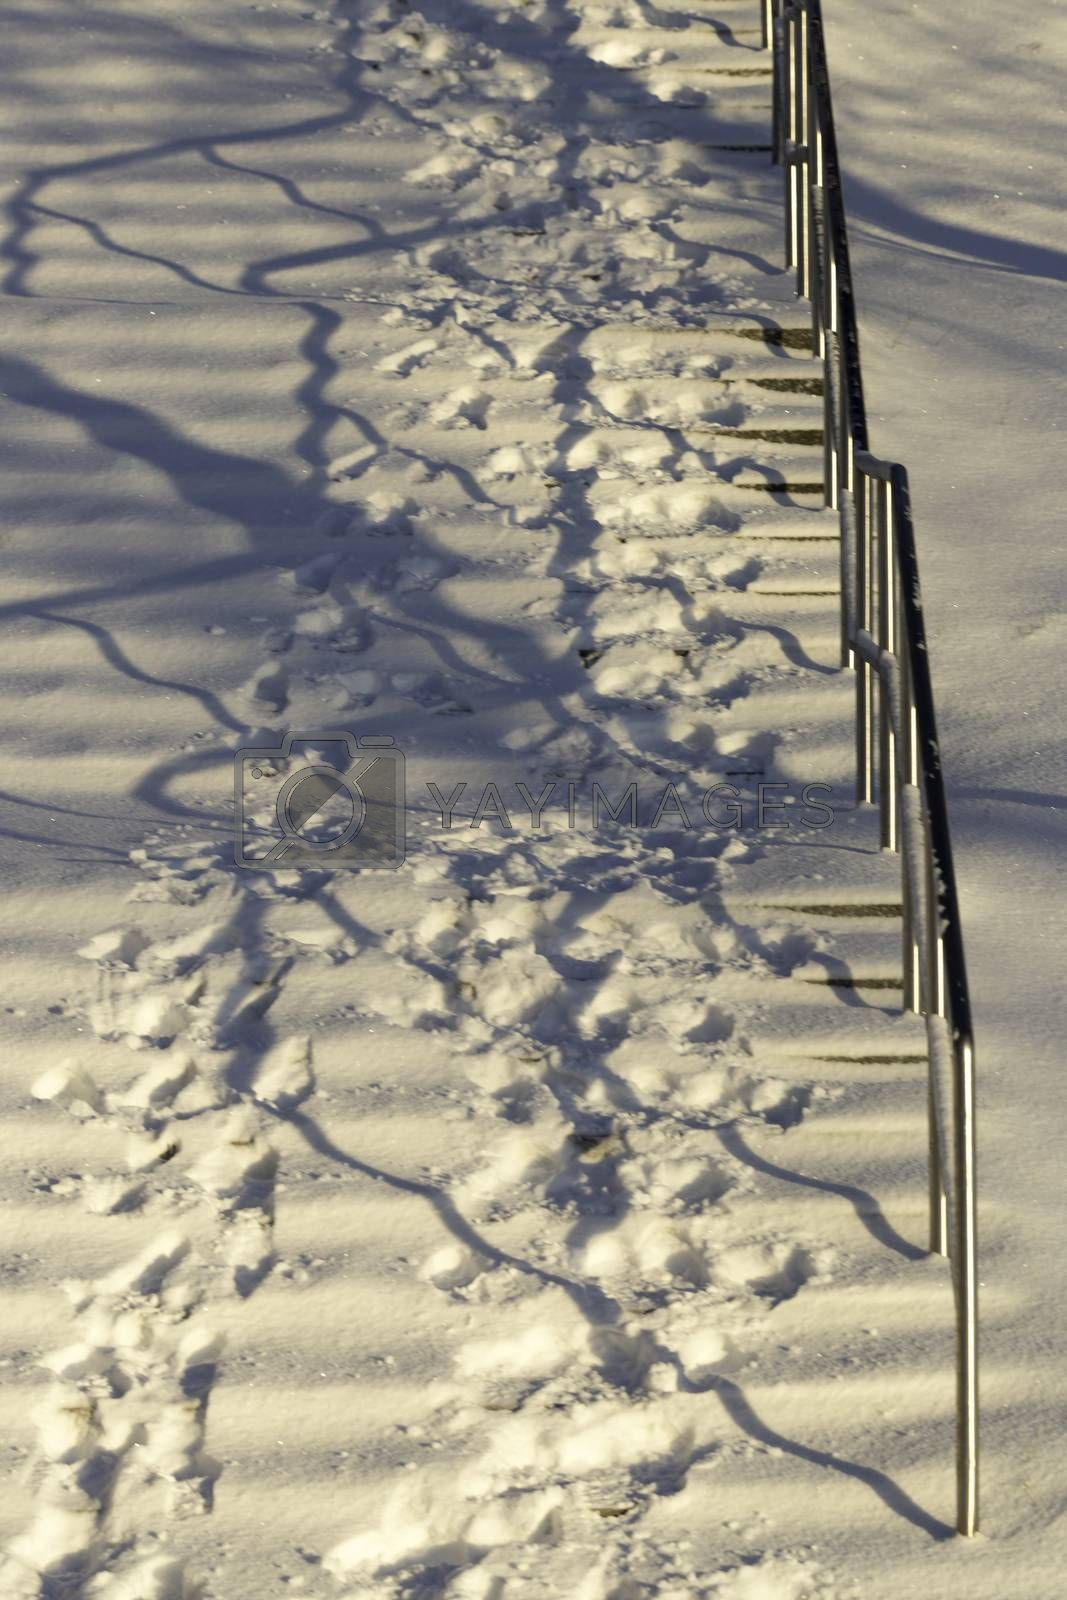 Footsteps in Snow up Stairs by Emmoth